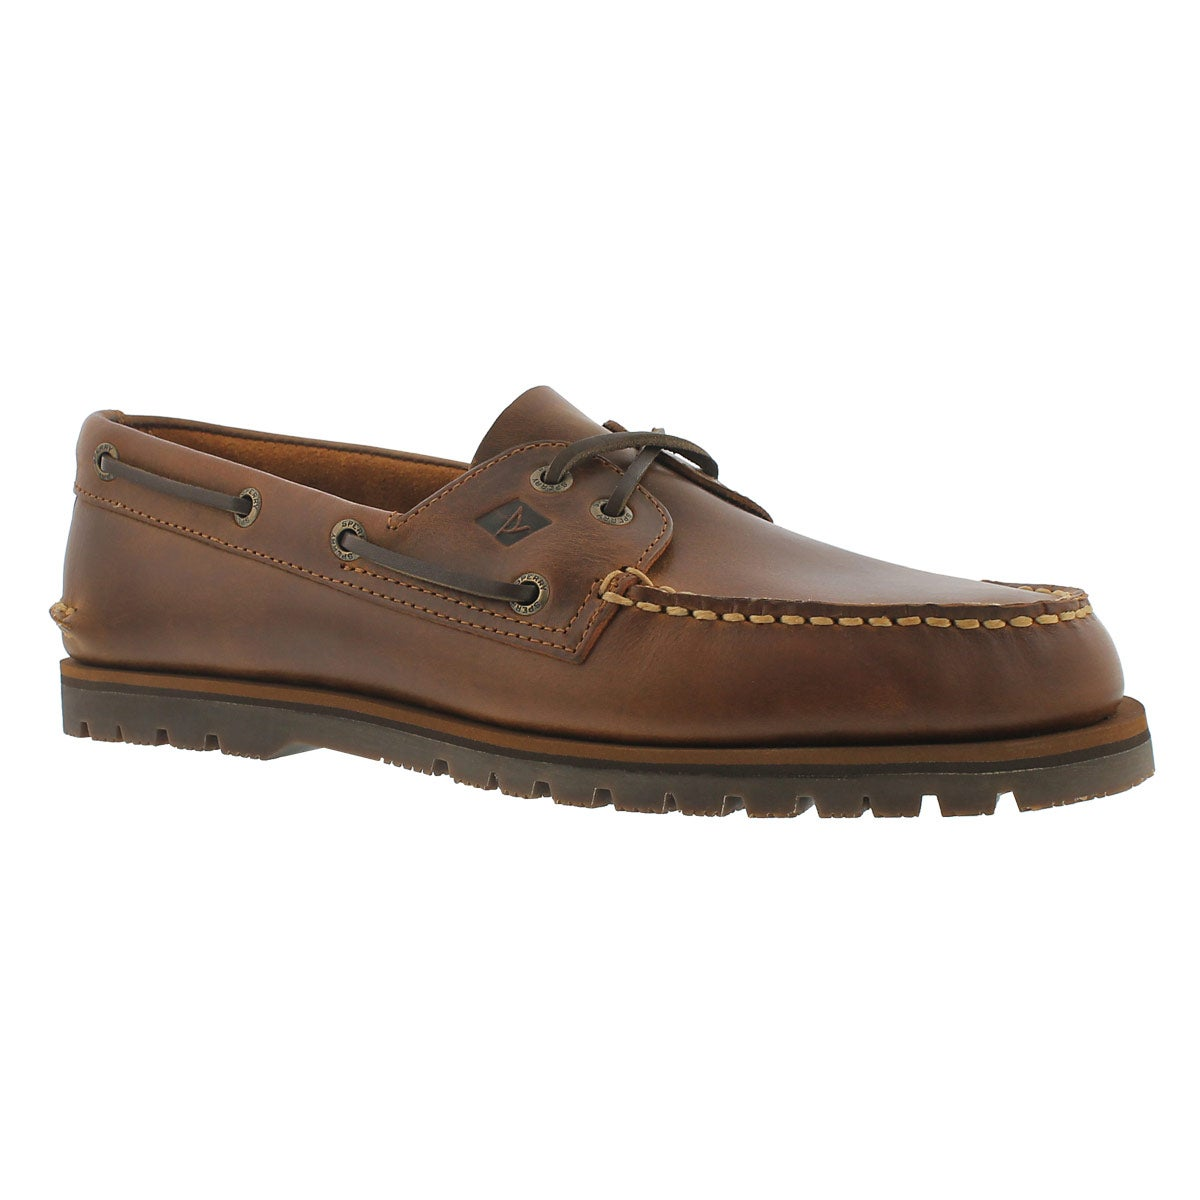 Mns A/O Mini Lug brown 2-eye boat shoe